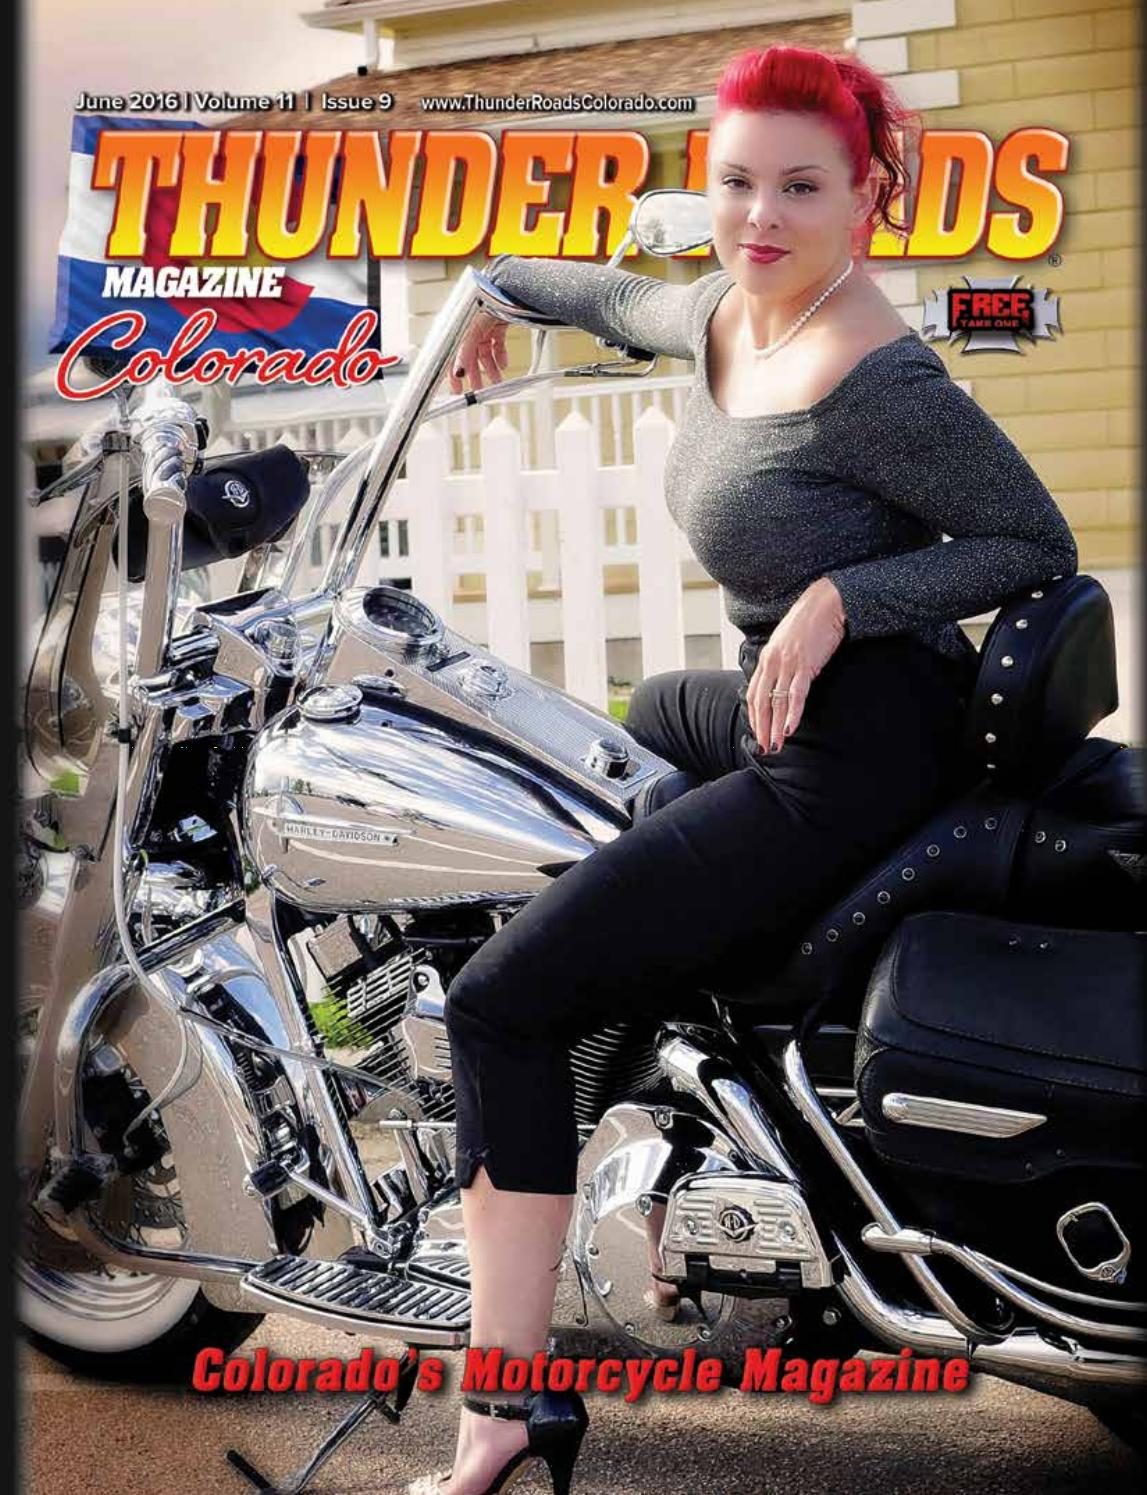 Thunder roads colorado magazine volume 11 issue 9 by for Volunteer motors clinton hwy